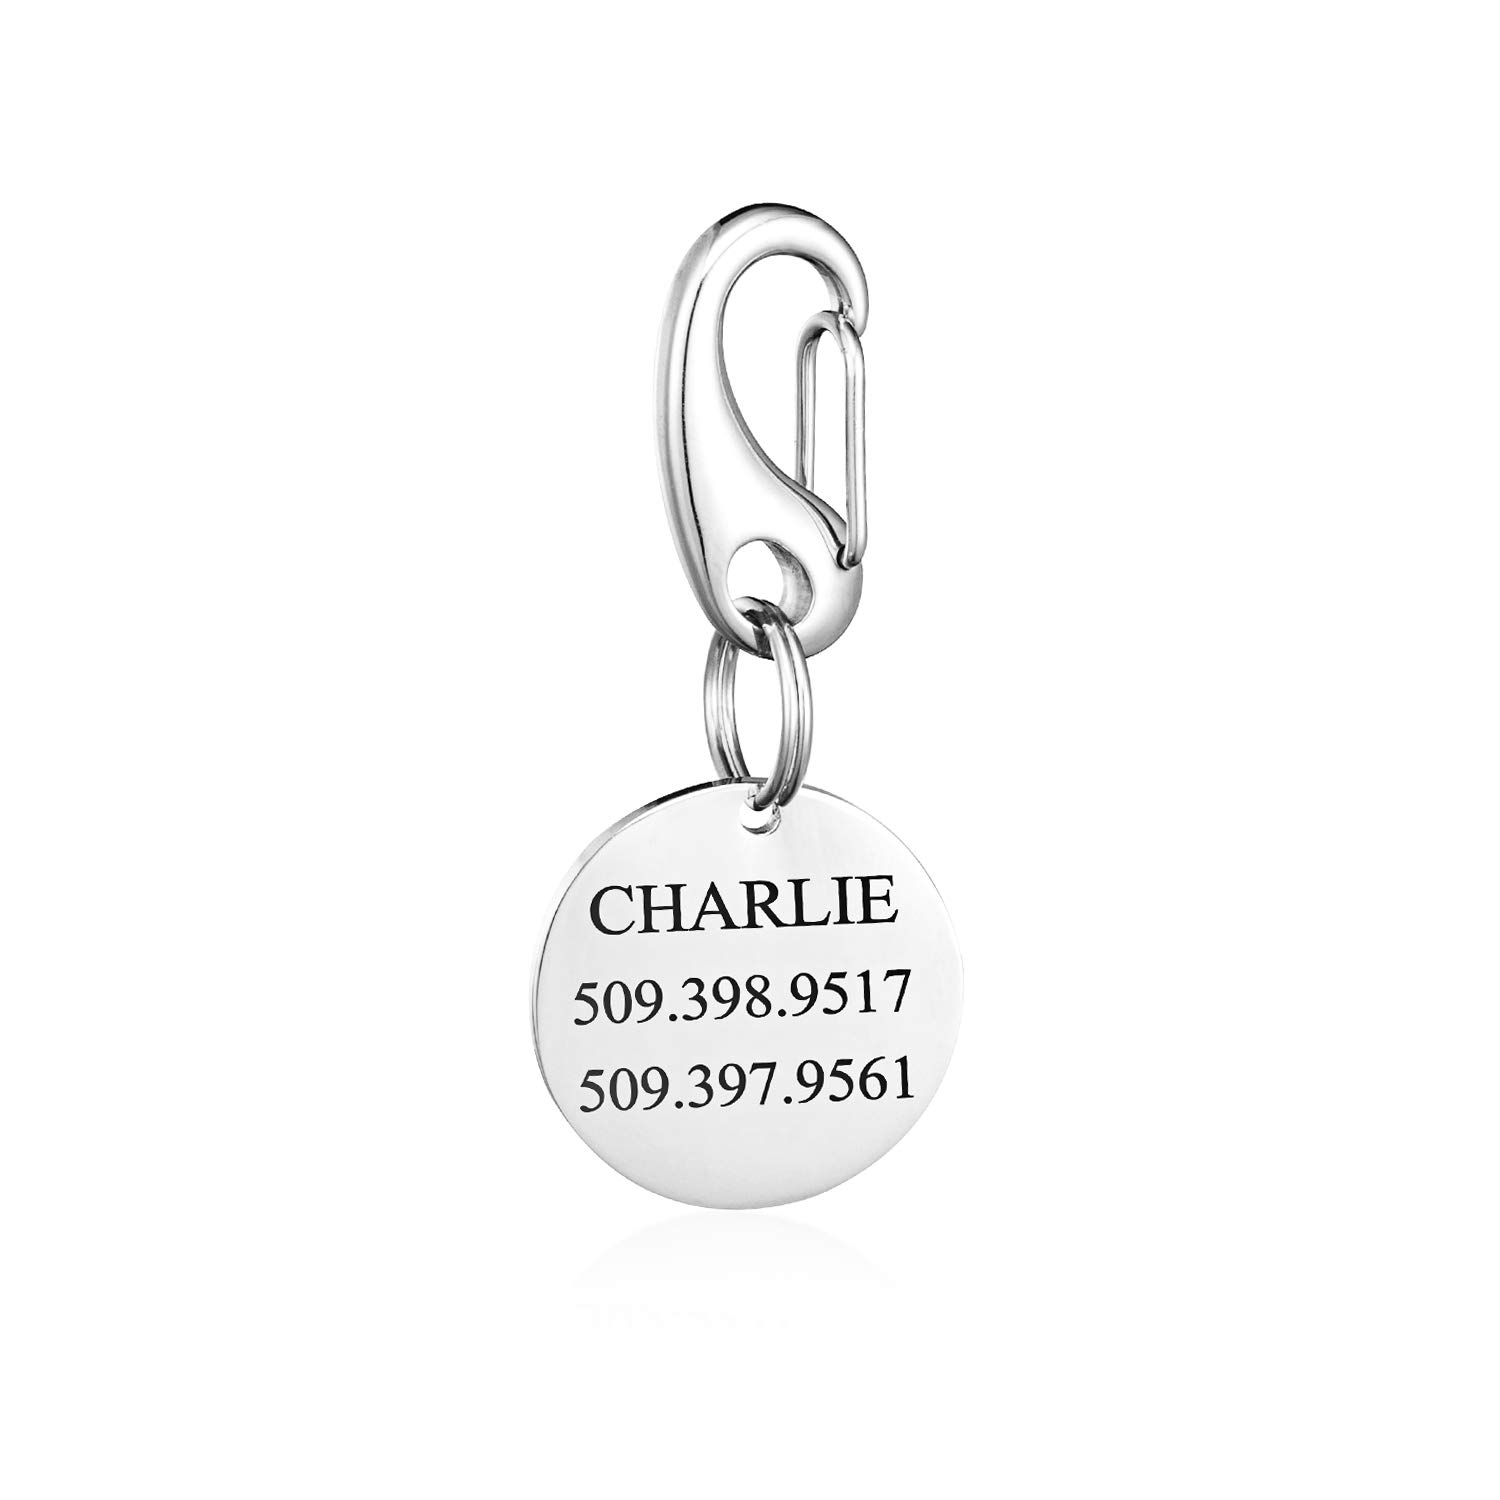 CHIC & ARTSY Dog Tag Custom and Quick Pet Clip Combos,Personalized pet ID Tags Engraved Front & Back,Stainless Steel